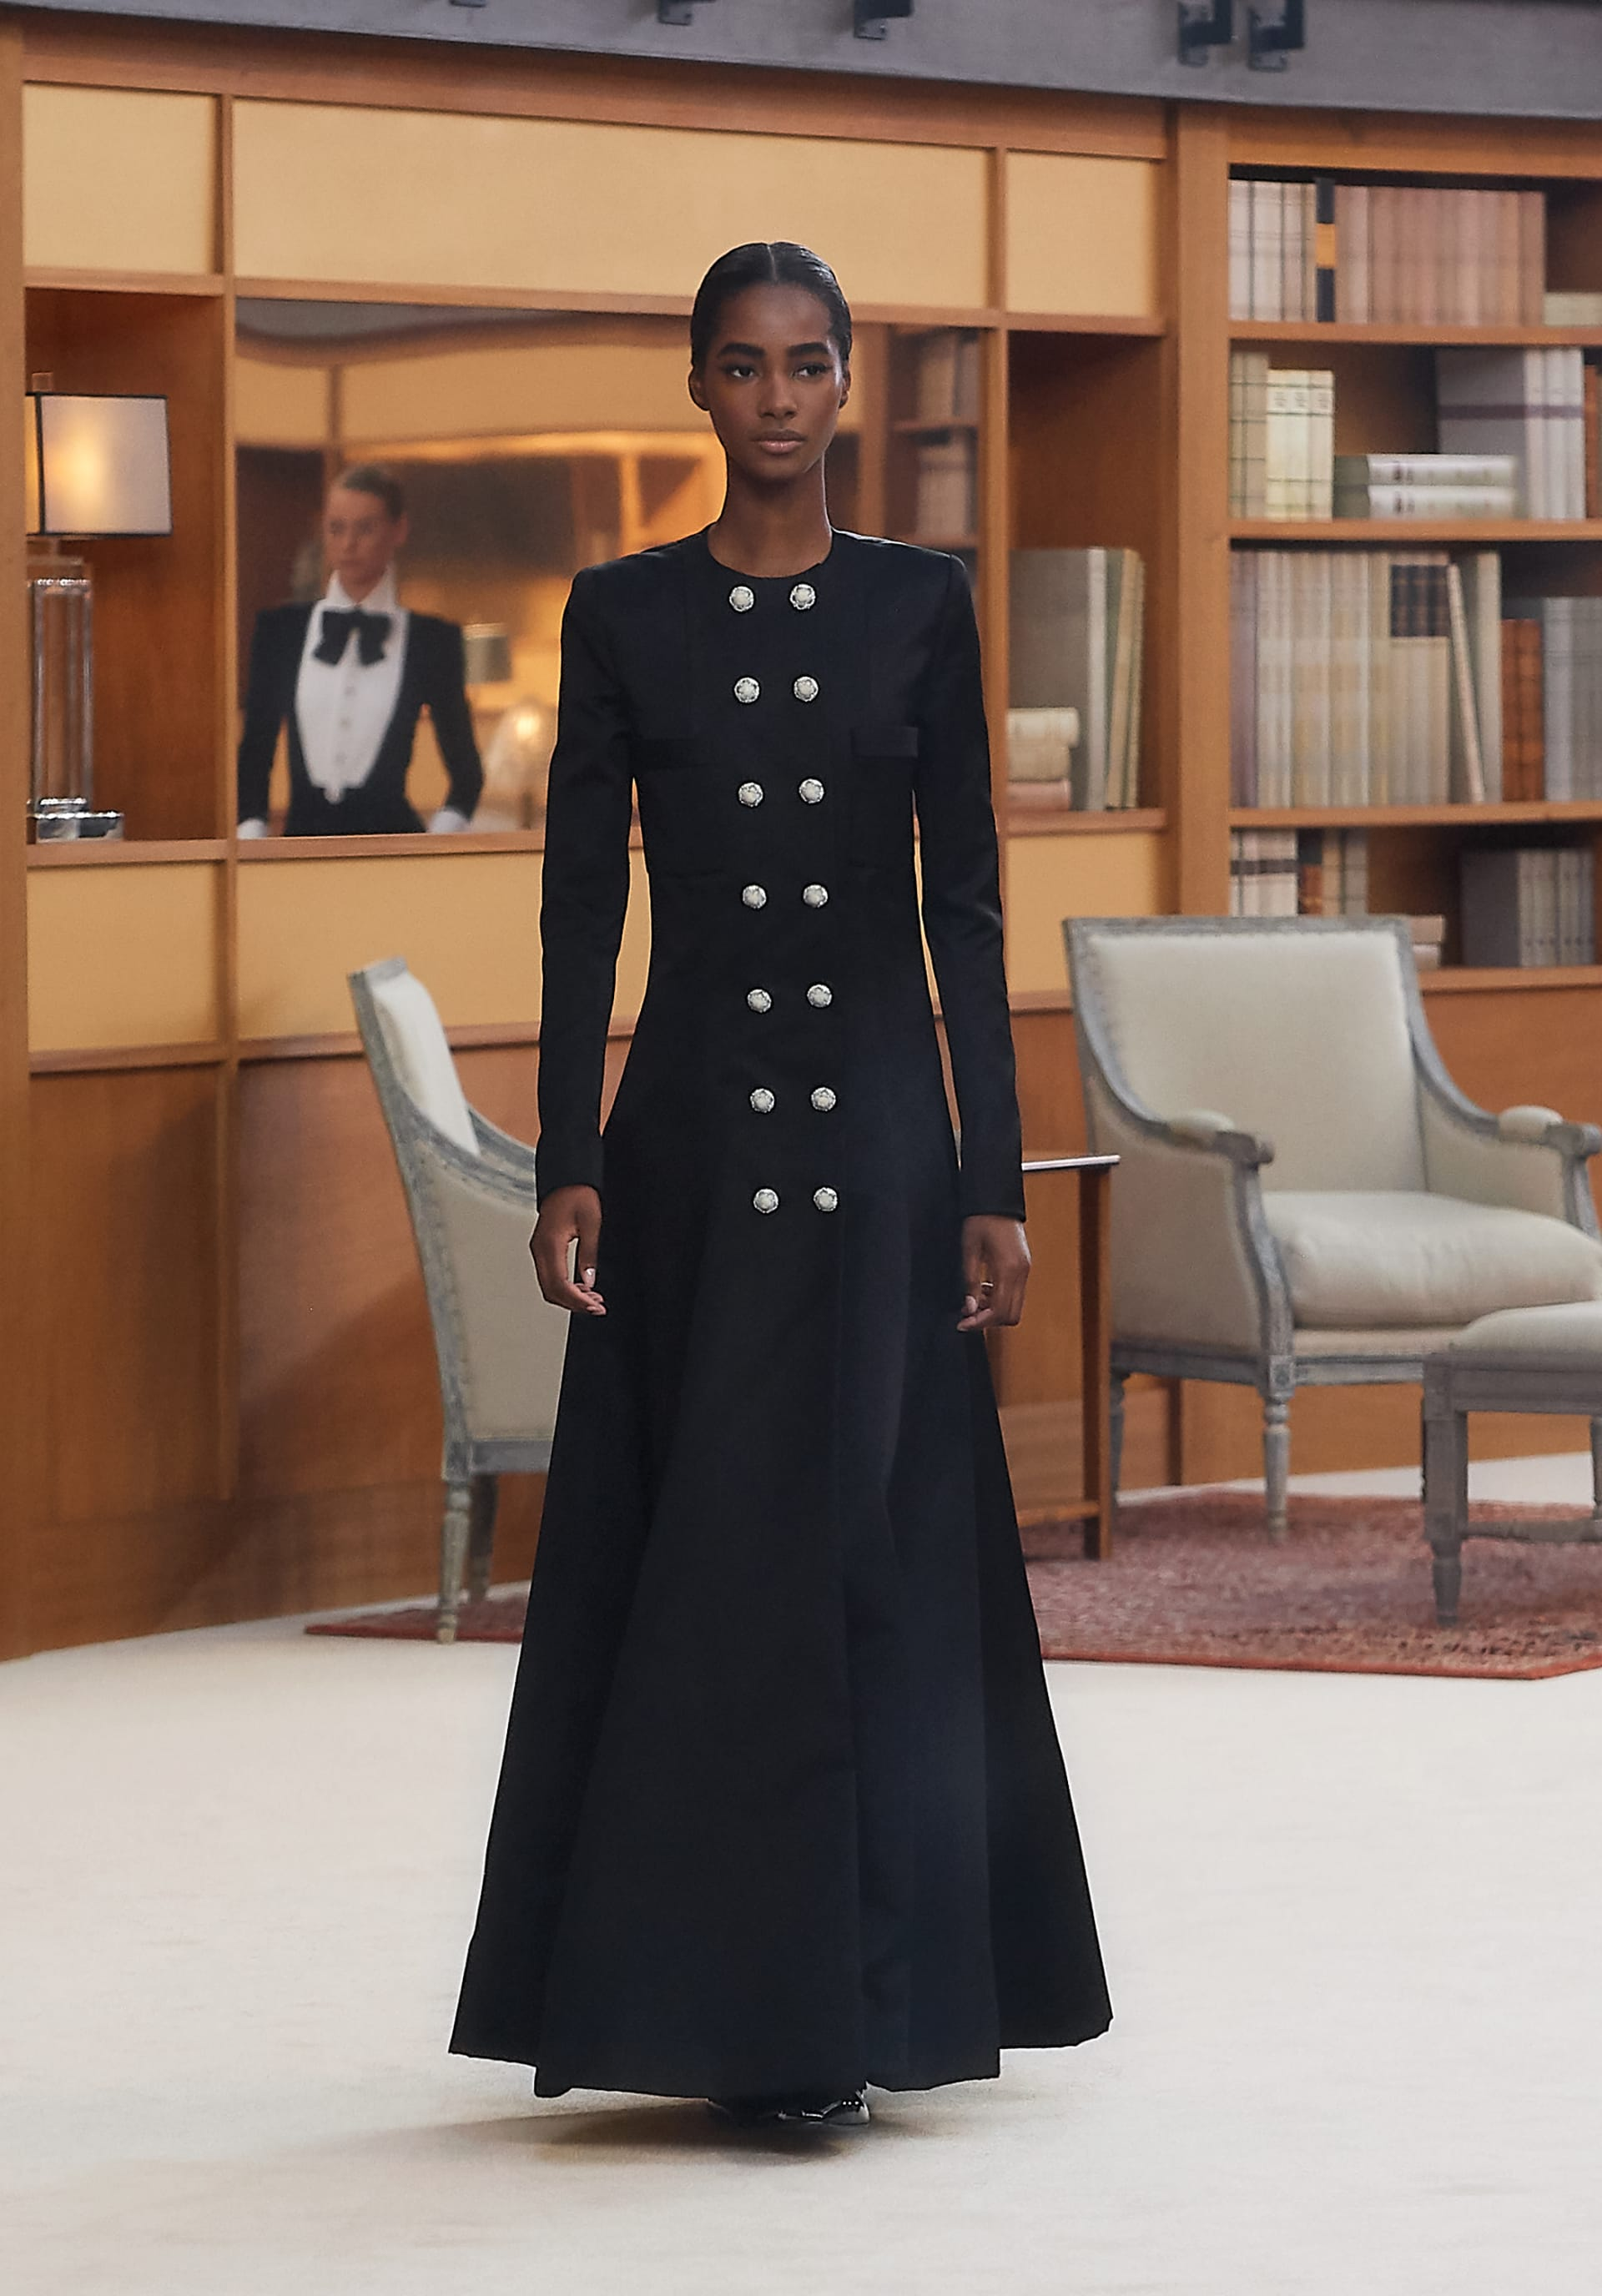 View 1 - Look 53 - Fall-Winter 2019/20 Haute-Couture - see full sized version